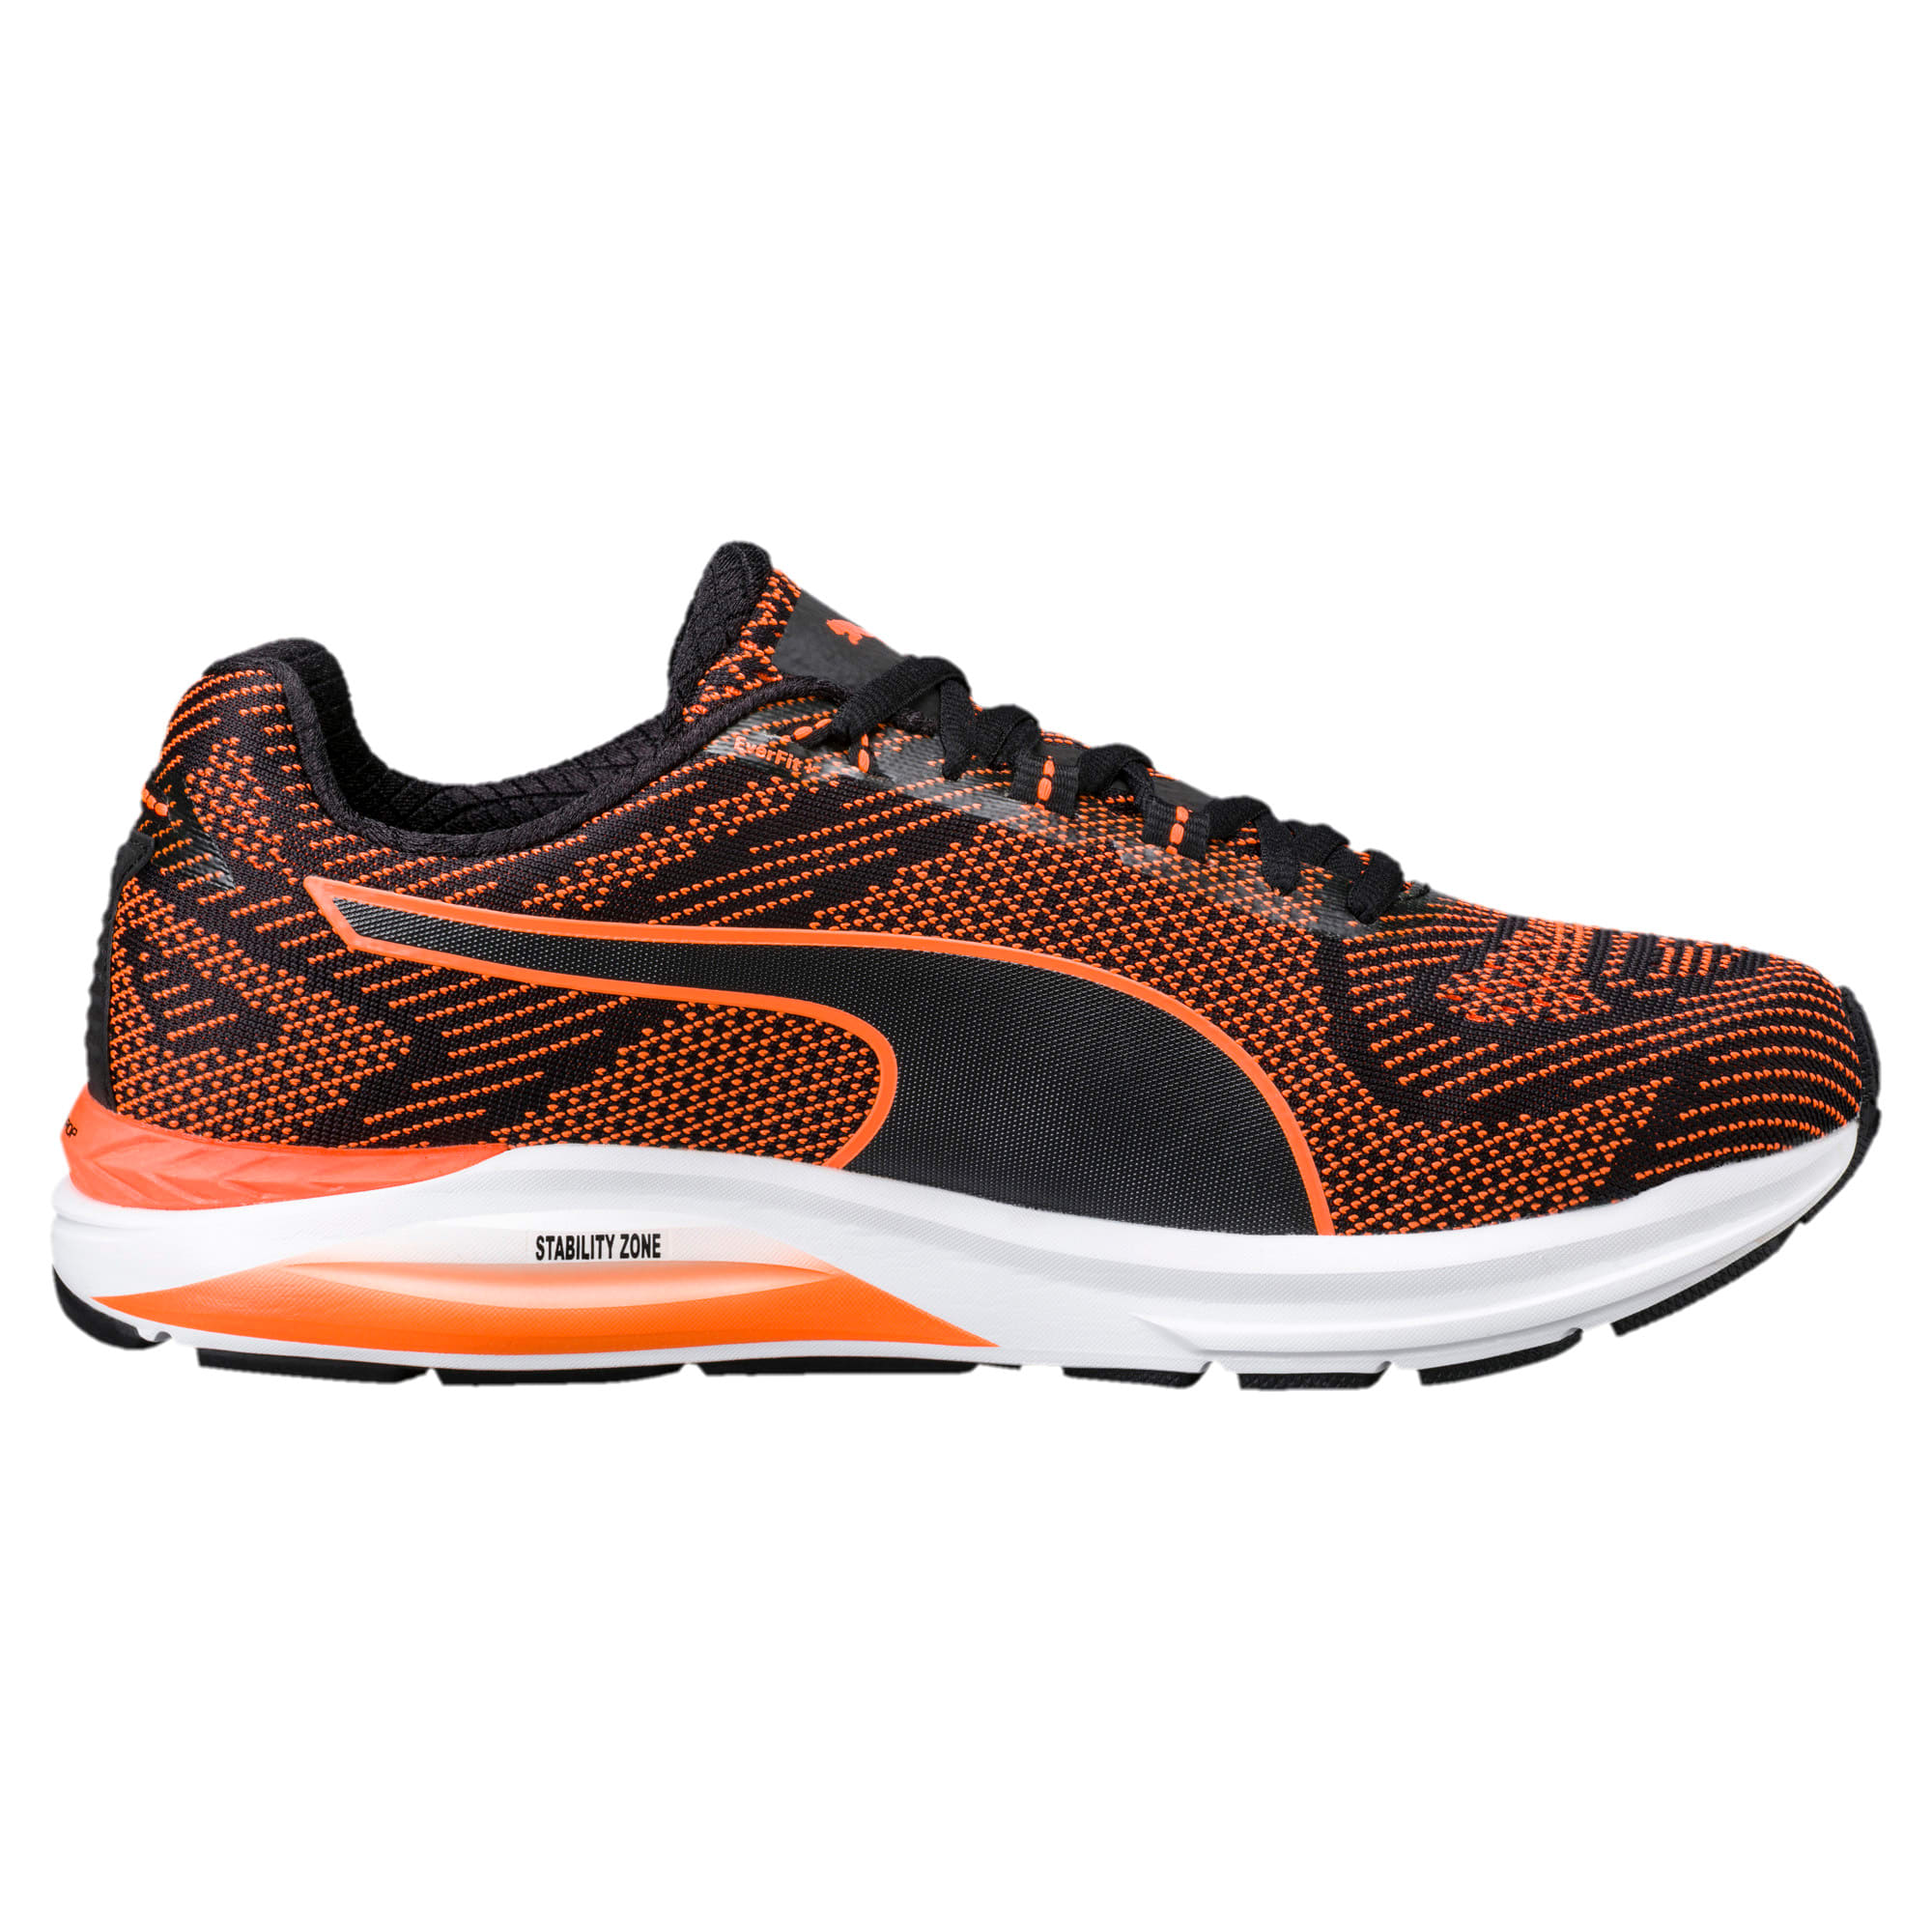 Thumbnail 4 of Speed 600 S IGNITE Men's Running Shoes, Puma Black-Shocking Orange, medium-IND